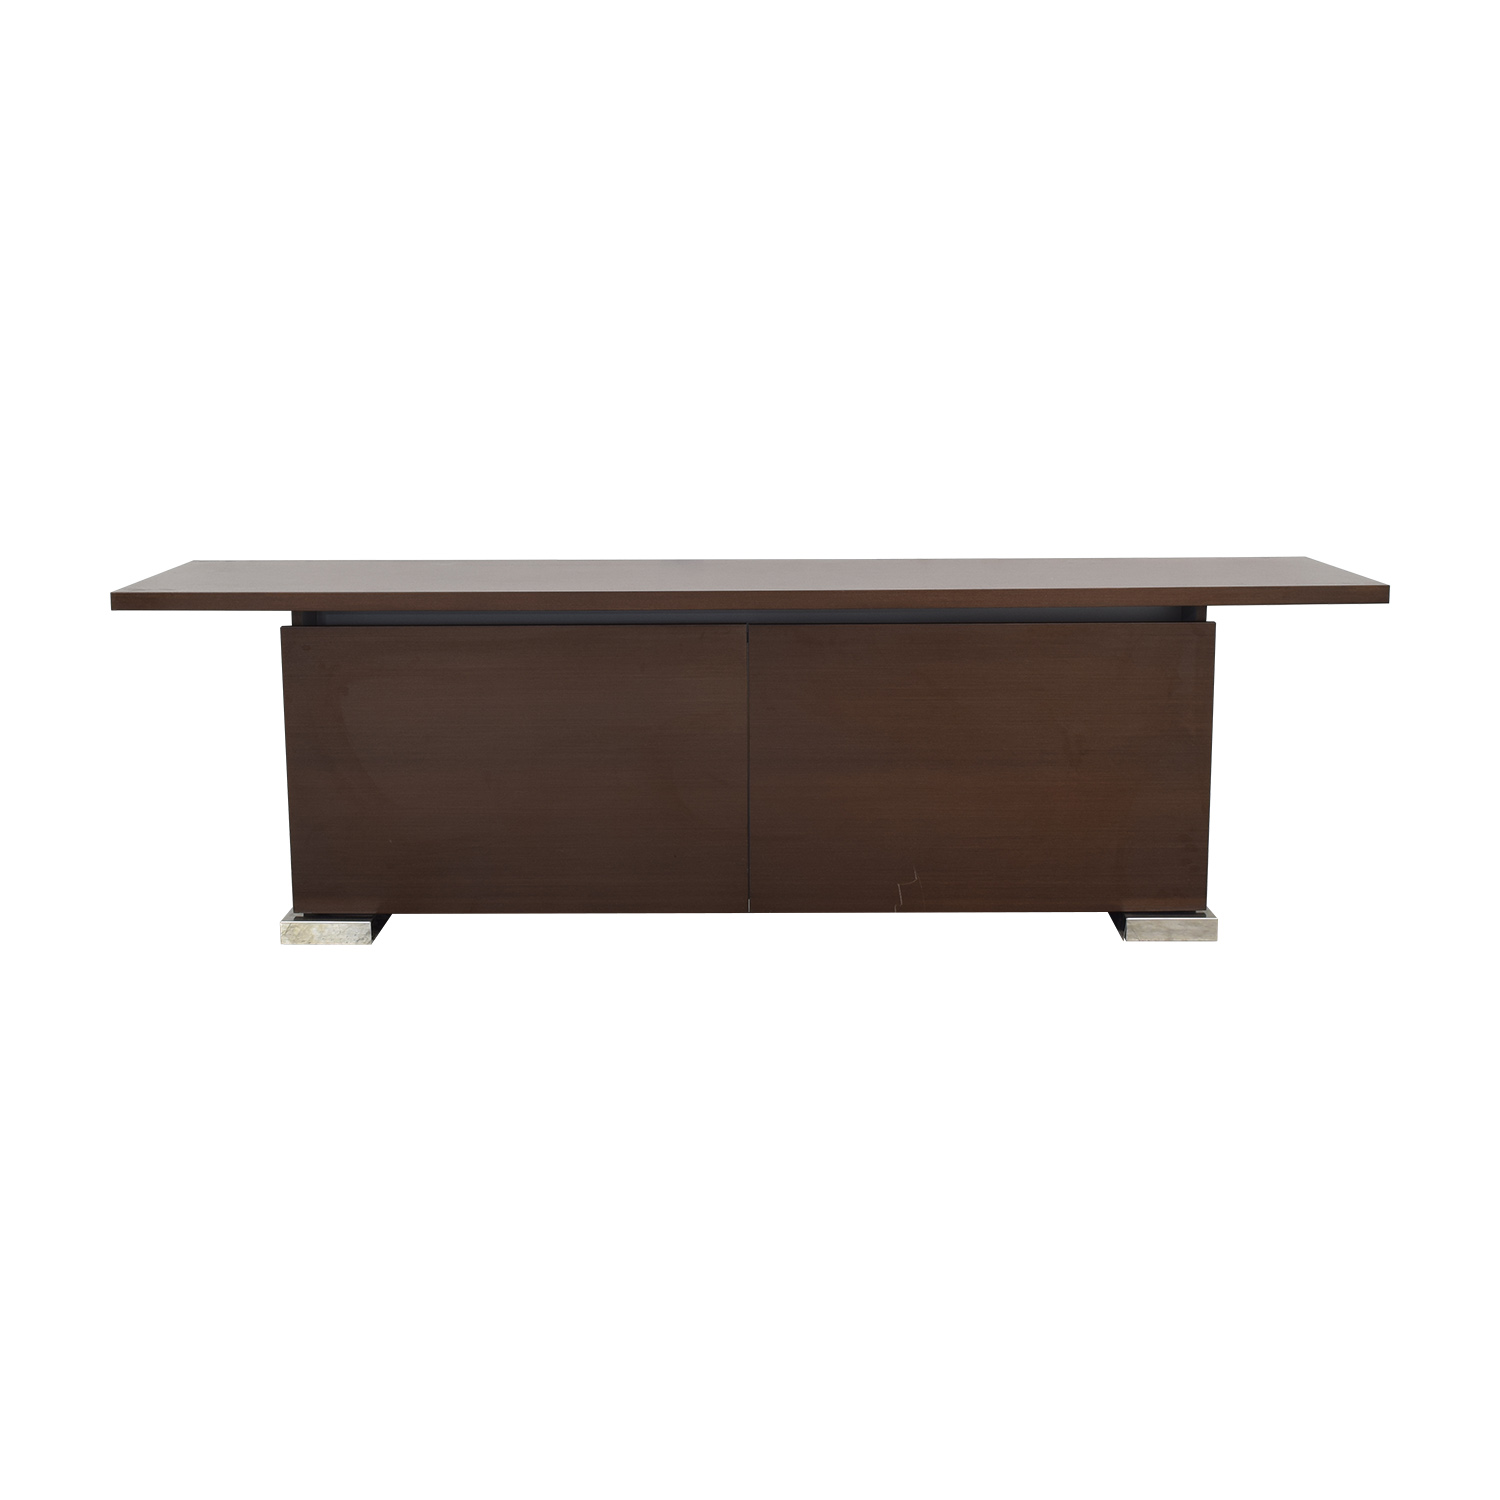 Cattelan Italia Cattelan Italia Sideboard for sale